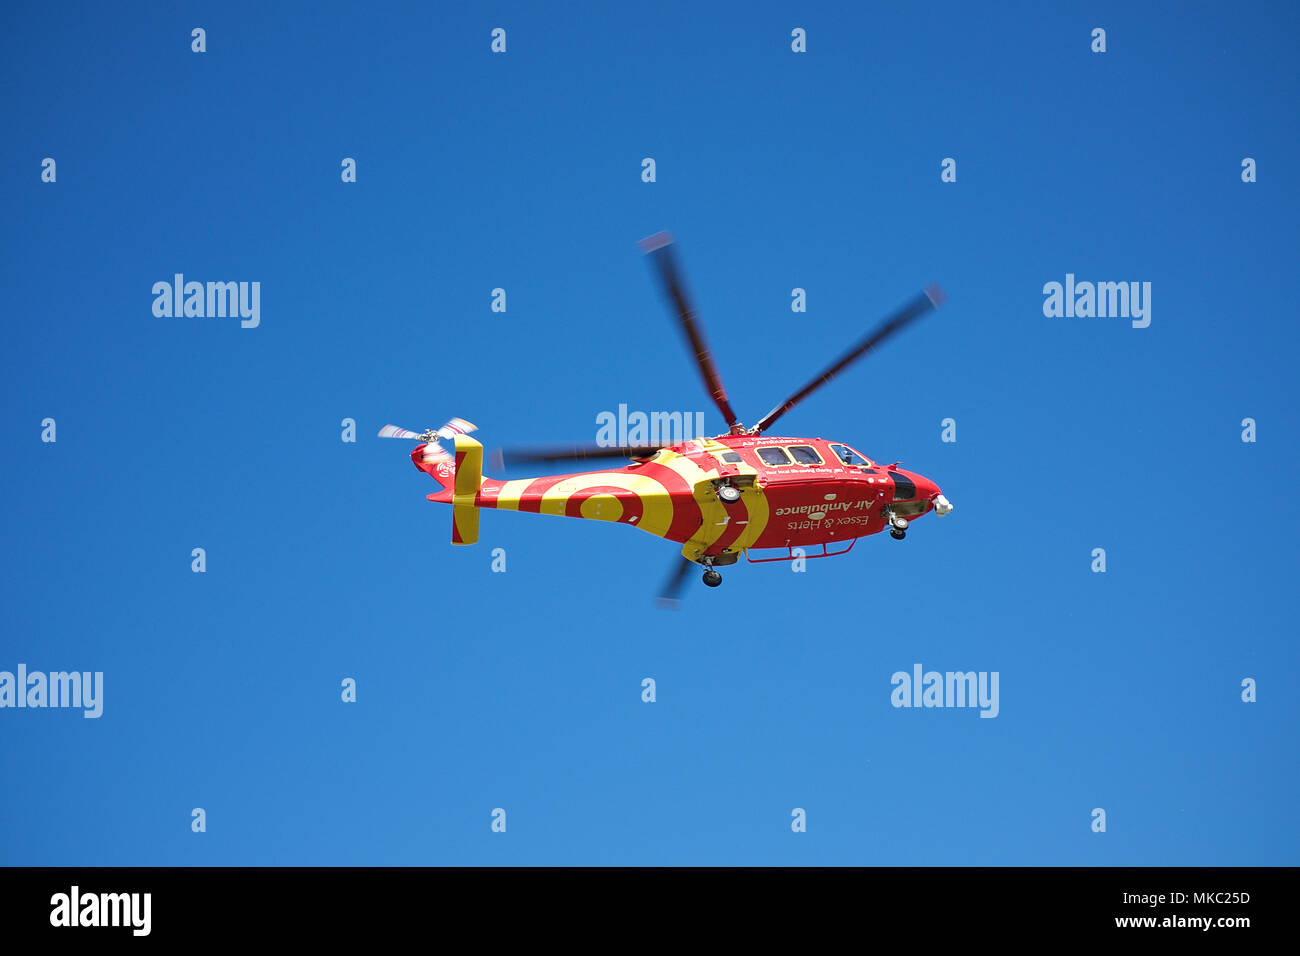 The Essex and Herts Air Ambulance an Augusta Westland 169 helicopter transporting a patient to Colchester General Hospital. Stock Photo